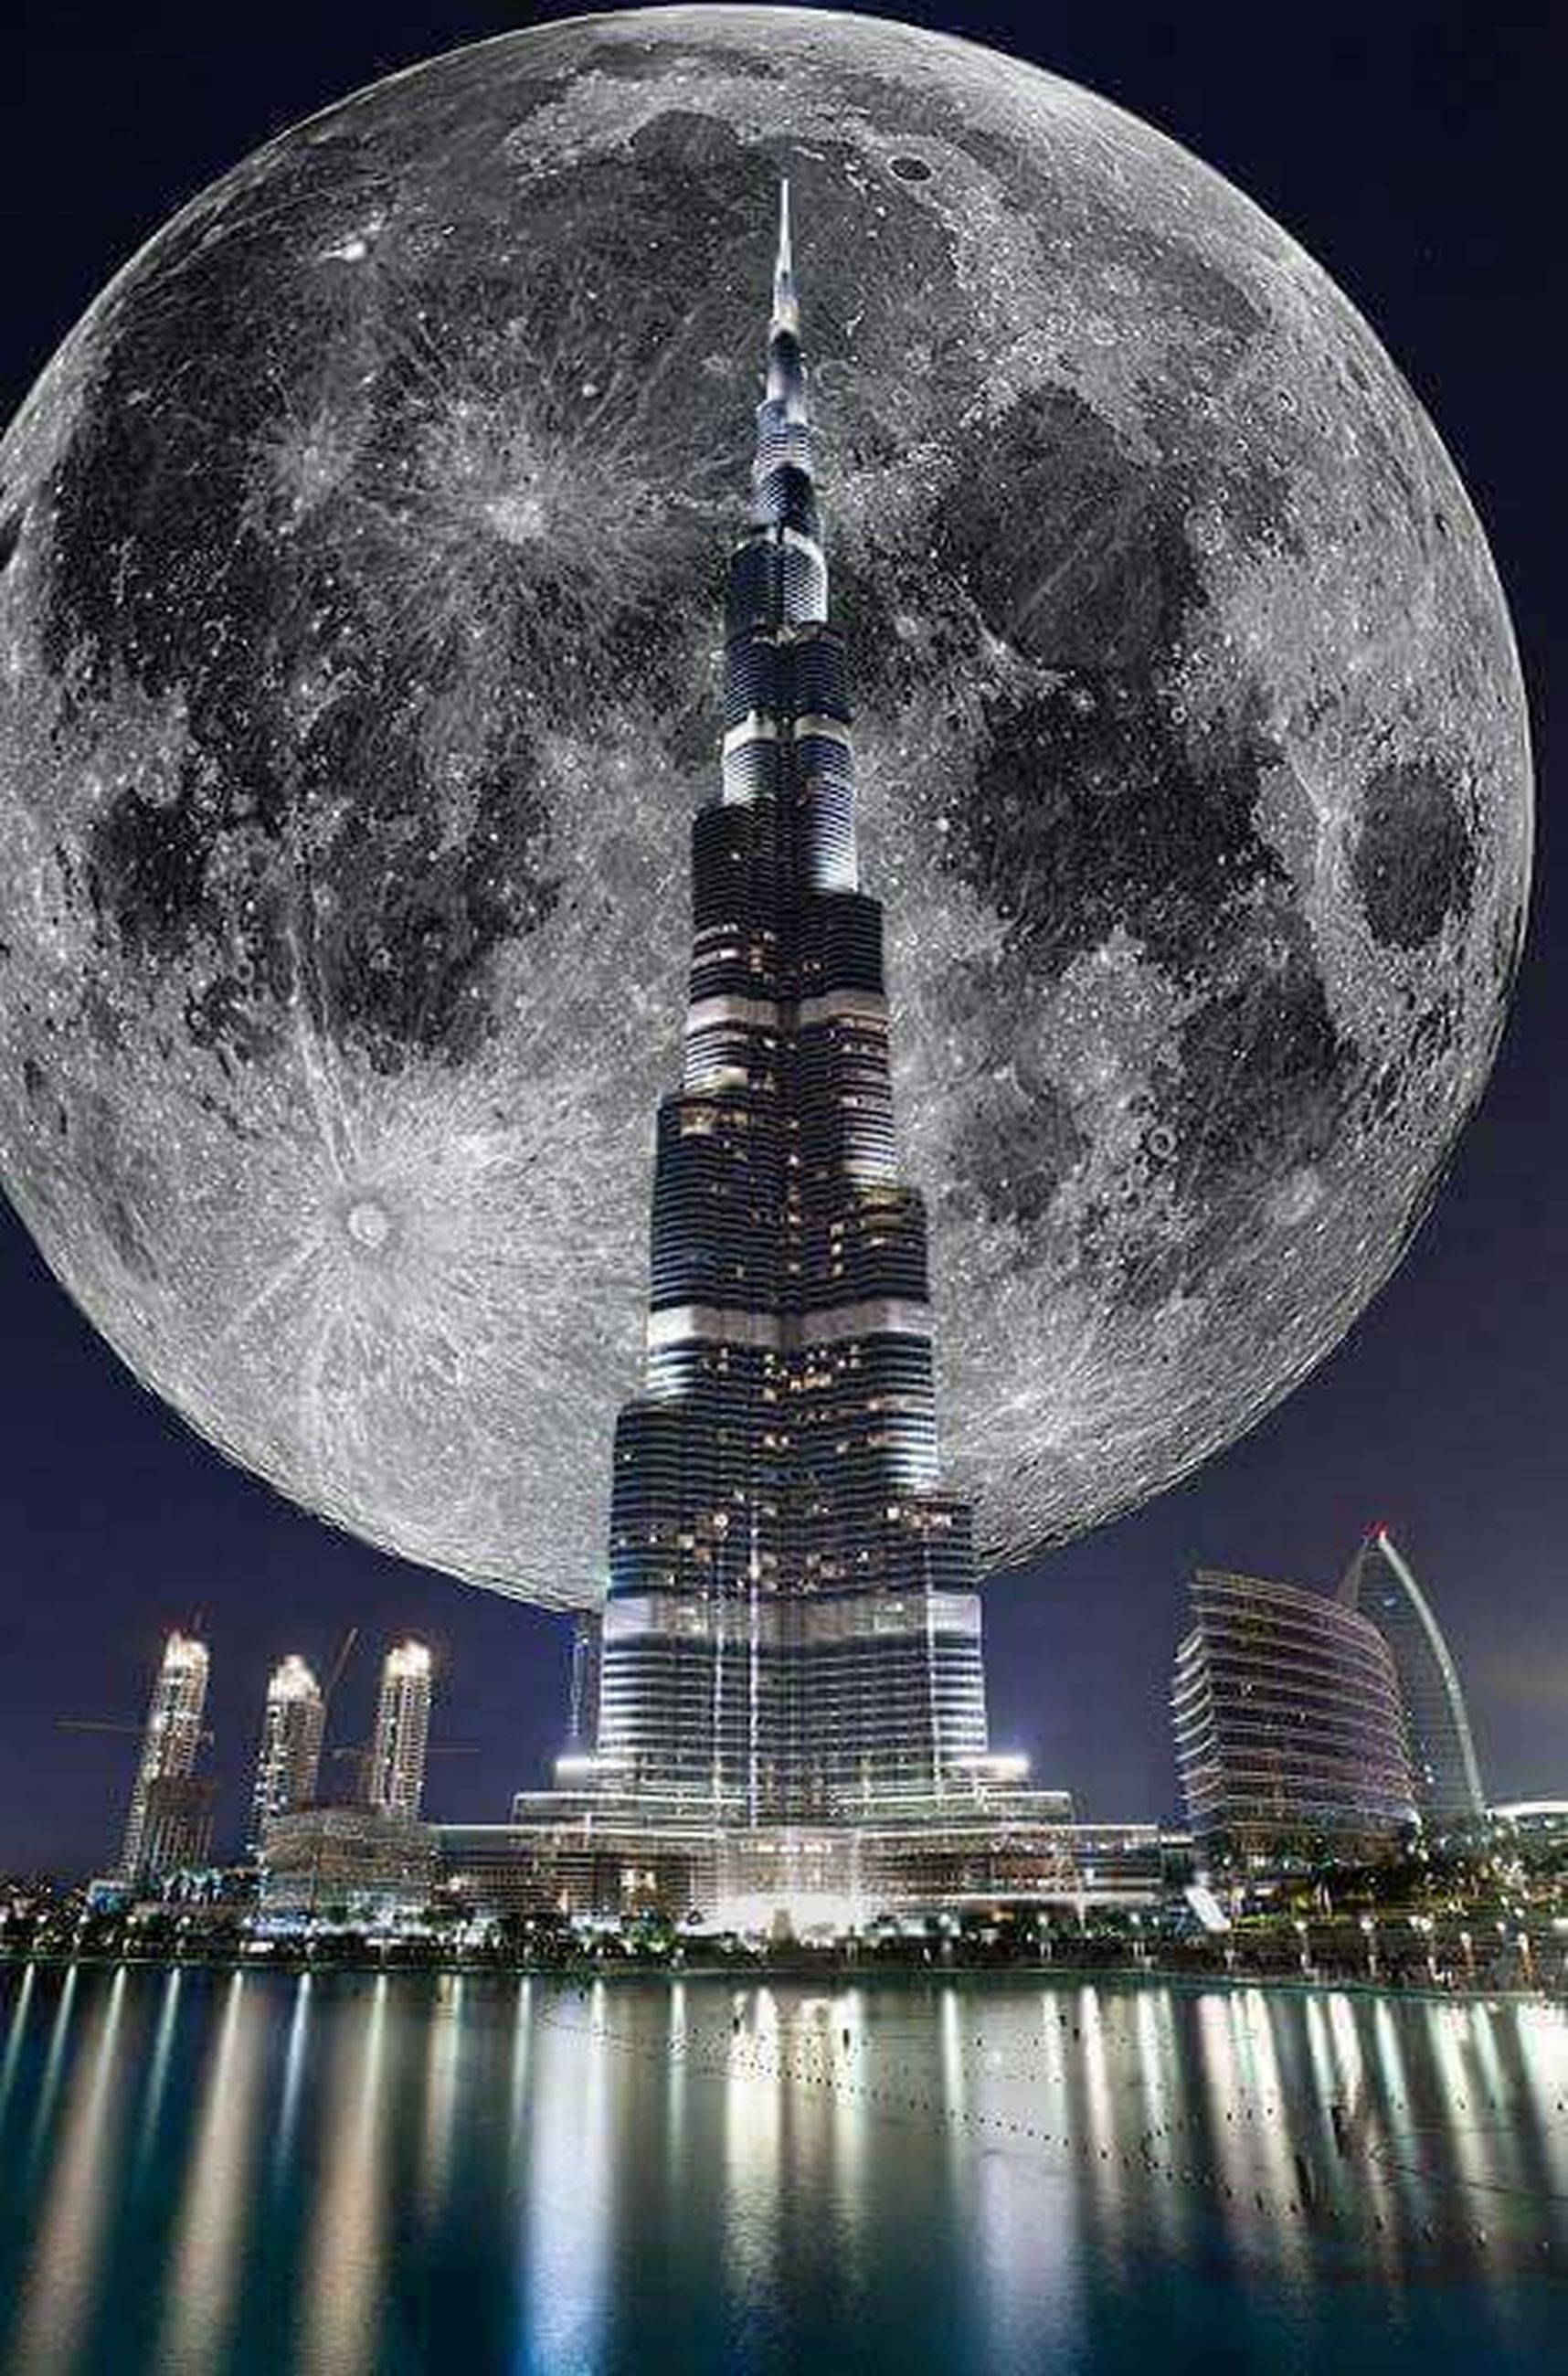 night, no people, planet - space, astronomy, planet earth, city, illuminated, urban skyline, skyscraper, outdoors, space, moon, global communications, architecture, sky, star - space